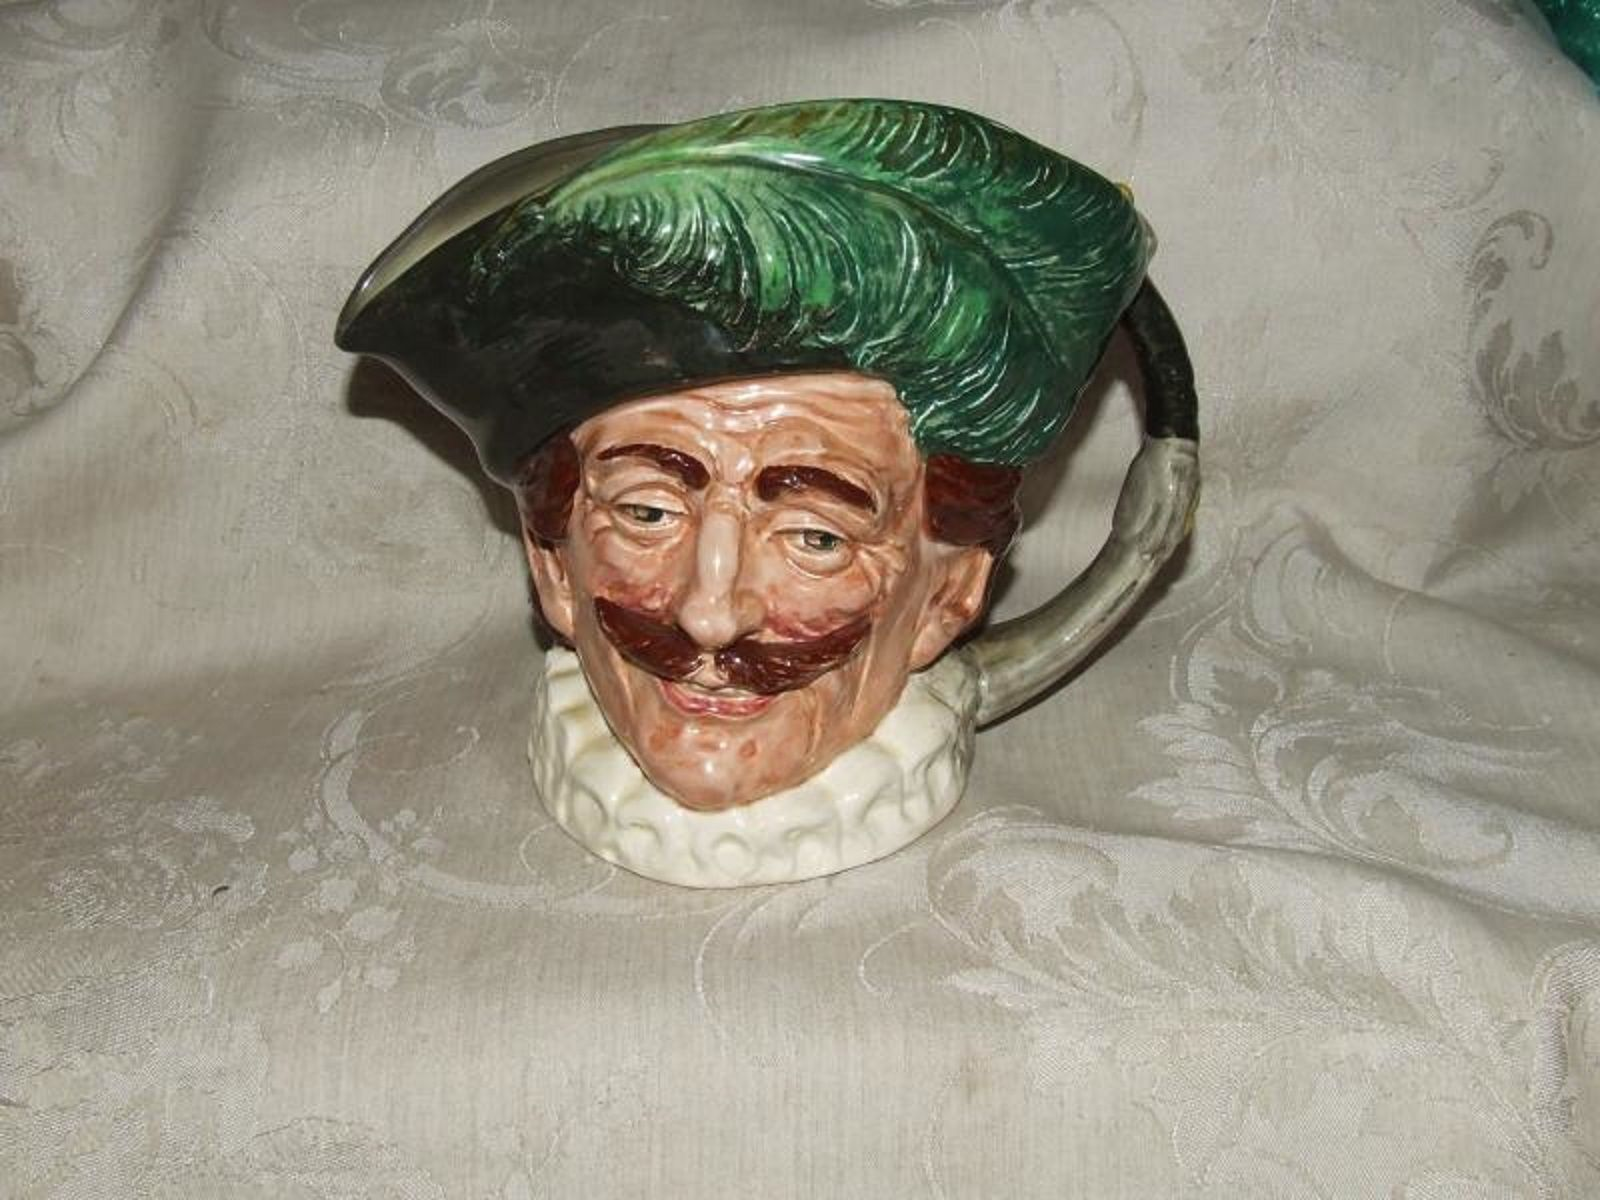 Vintage 1932+ Royal Doulton THE CAVALIER Staffordshire Large Toby Jug Pitcher - $165.00